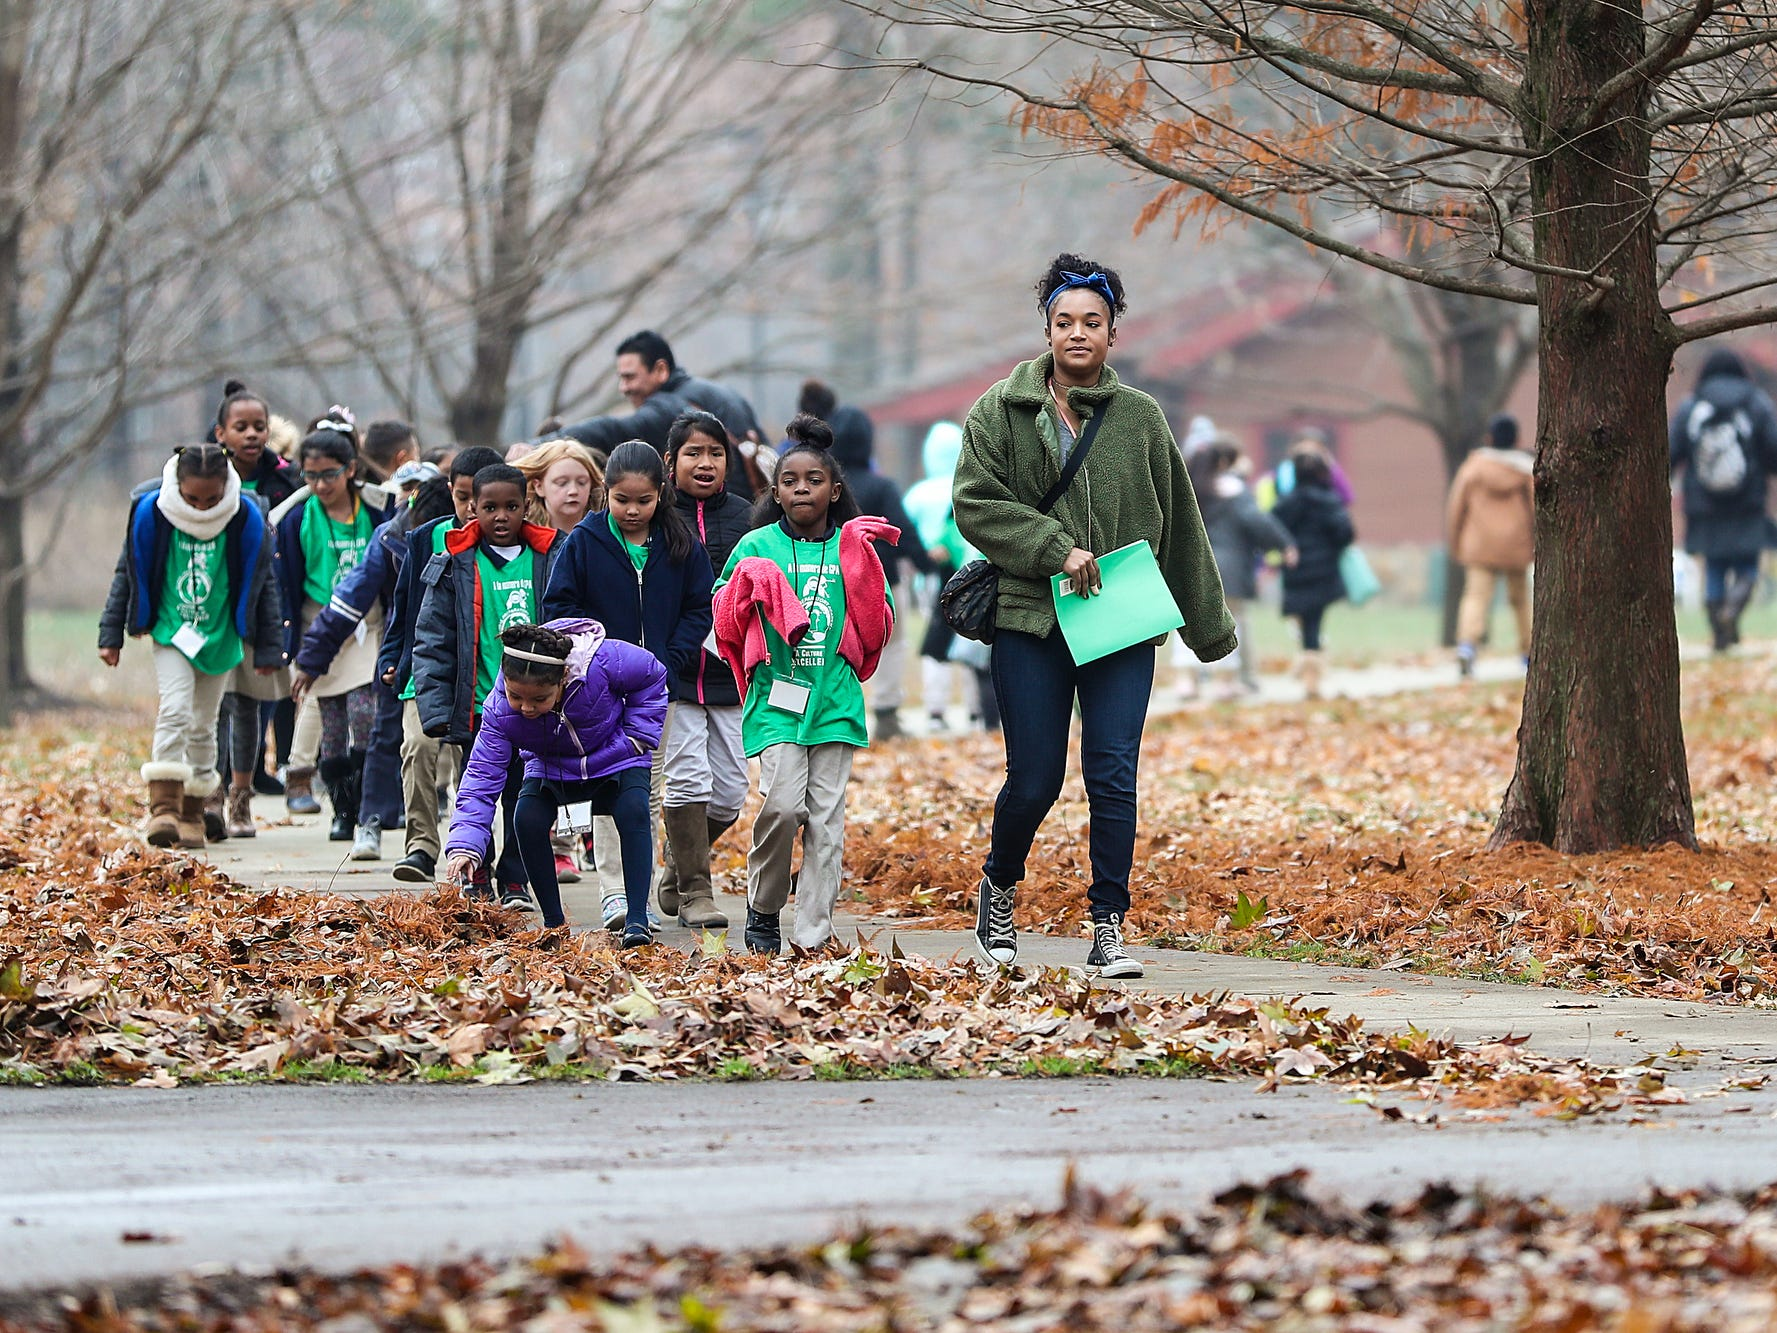 Second grade students from Global Preparatory Academy explore nature on a field trip to Jameson Camp in Indianapolis, Friday, Nov. 30, 2018. Field trip outings and summer camps aim to build children's confidence and interpersonal skills while immersing them in nature. Summer camp tuition ranges from $80 to $500 and is based on a family's income.